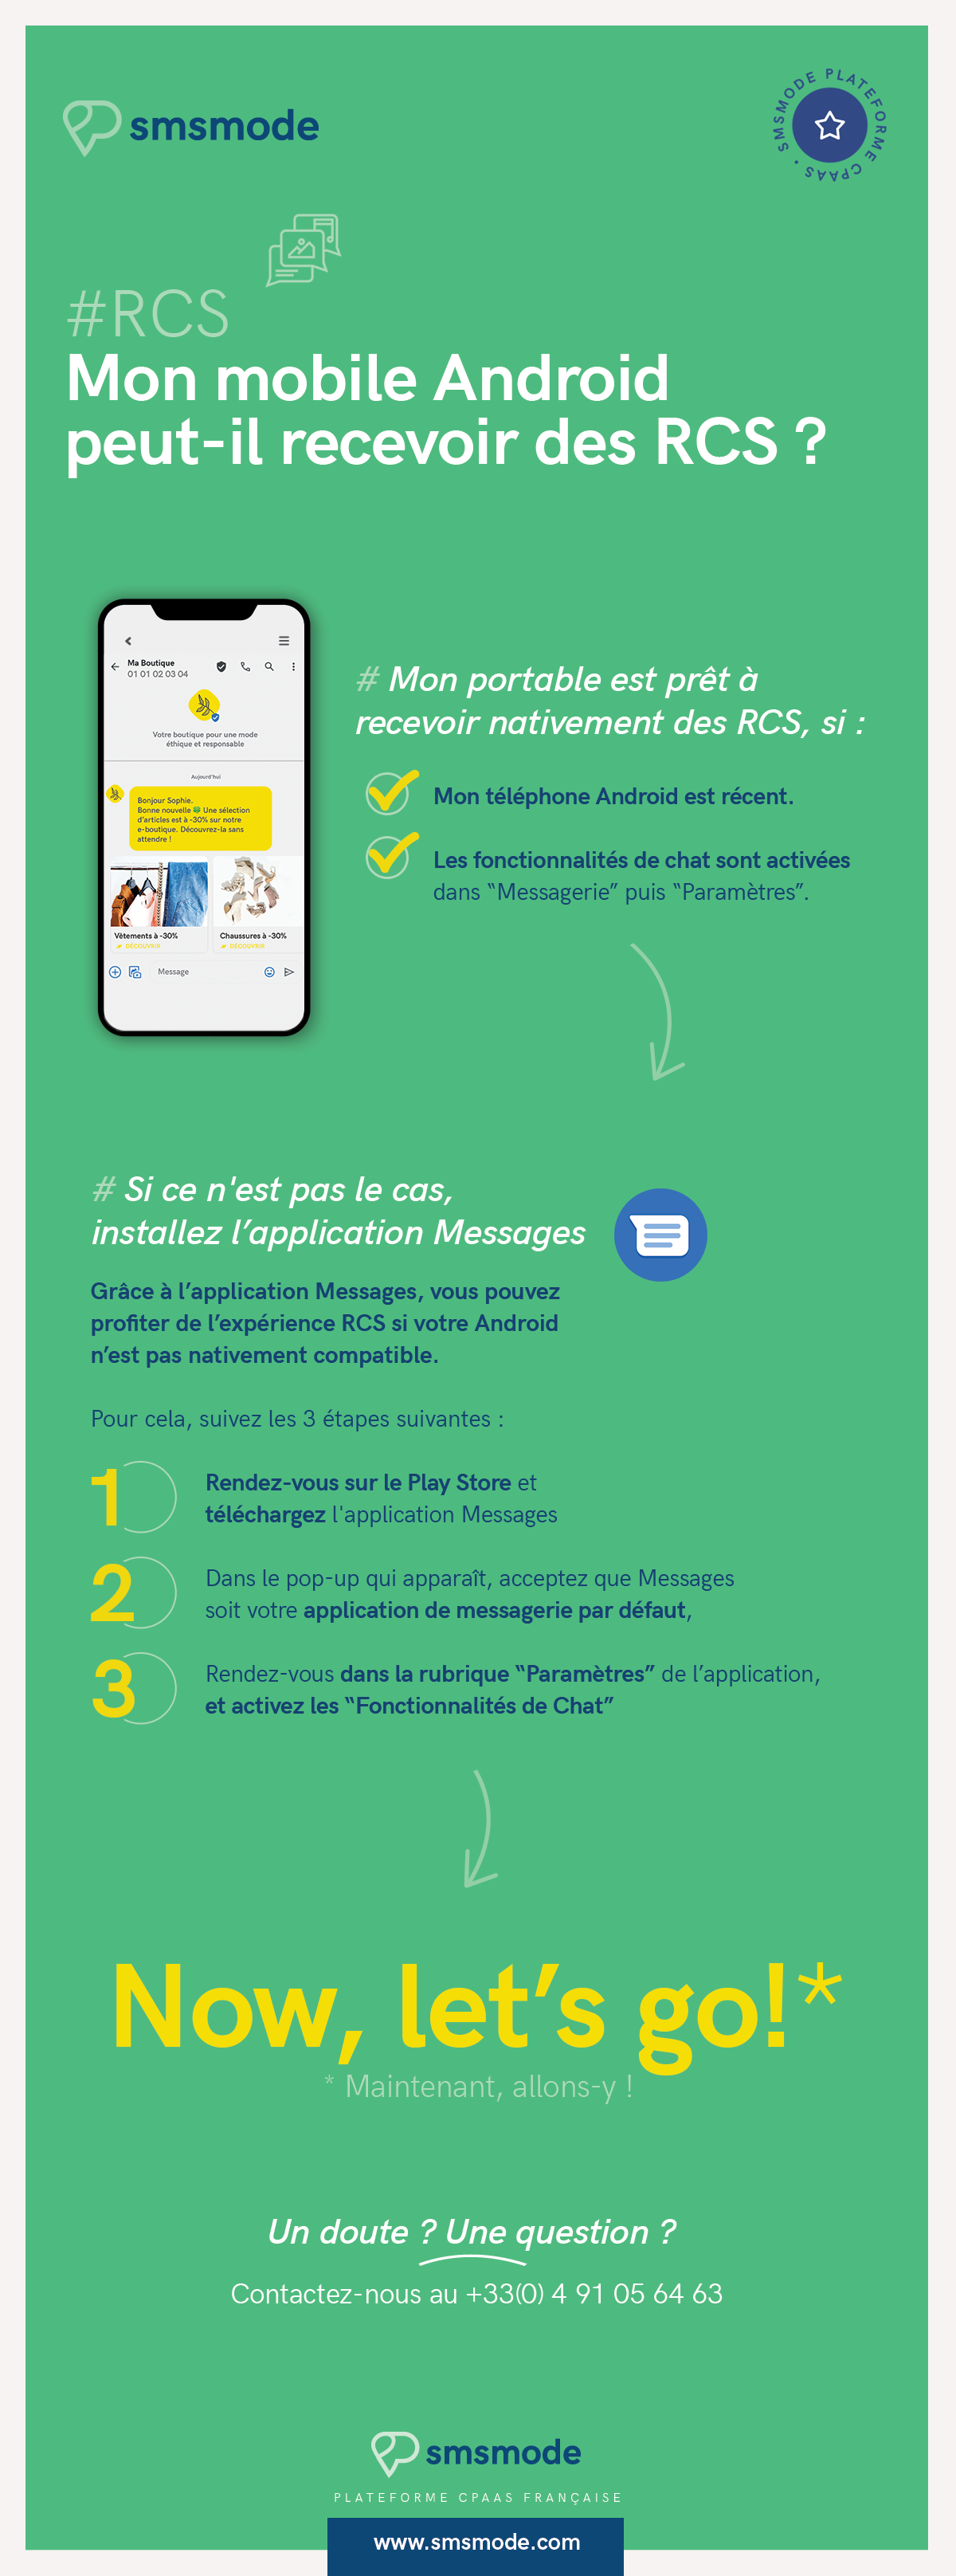 infographie smsmode mode d'activation RCS mobile